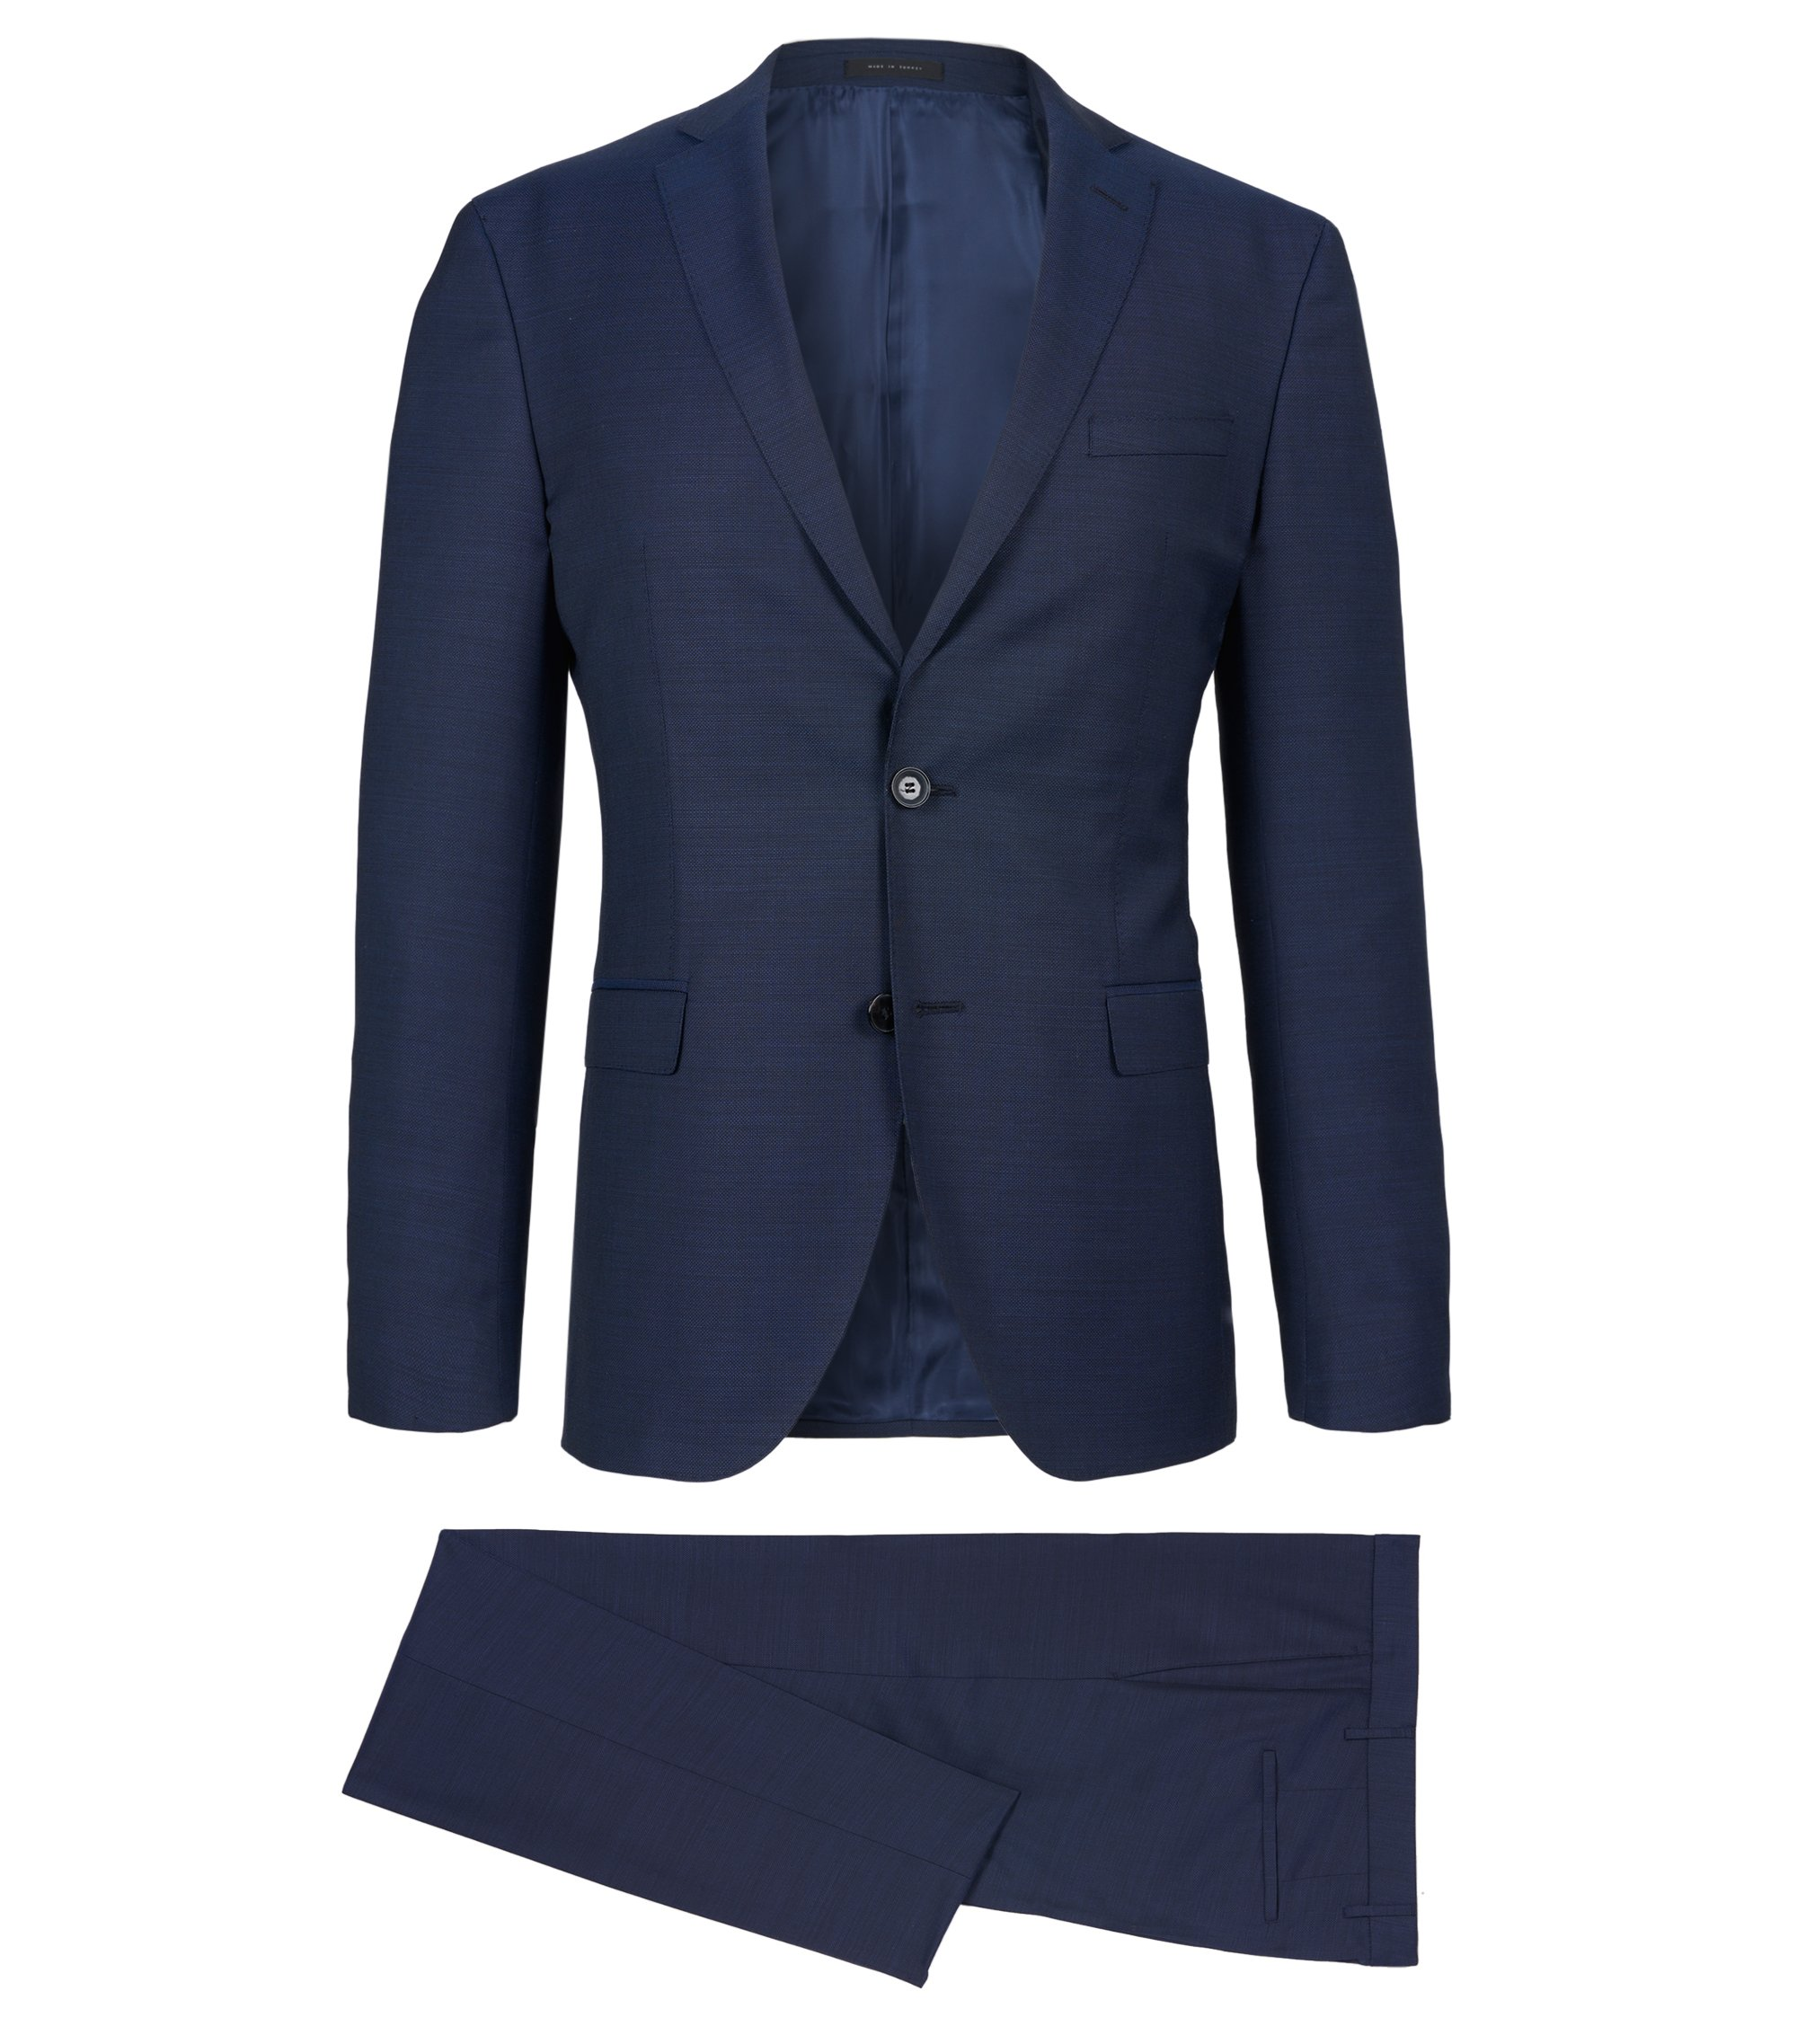 Birdseye Italian Super 100 Virgin Wool Suit, Extra-Slim Fit | Reyno/Wave, Dark Blue